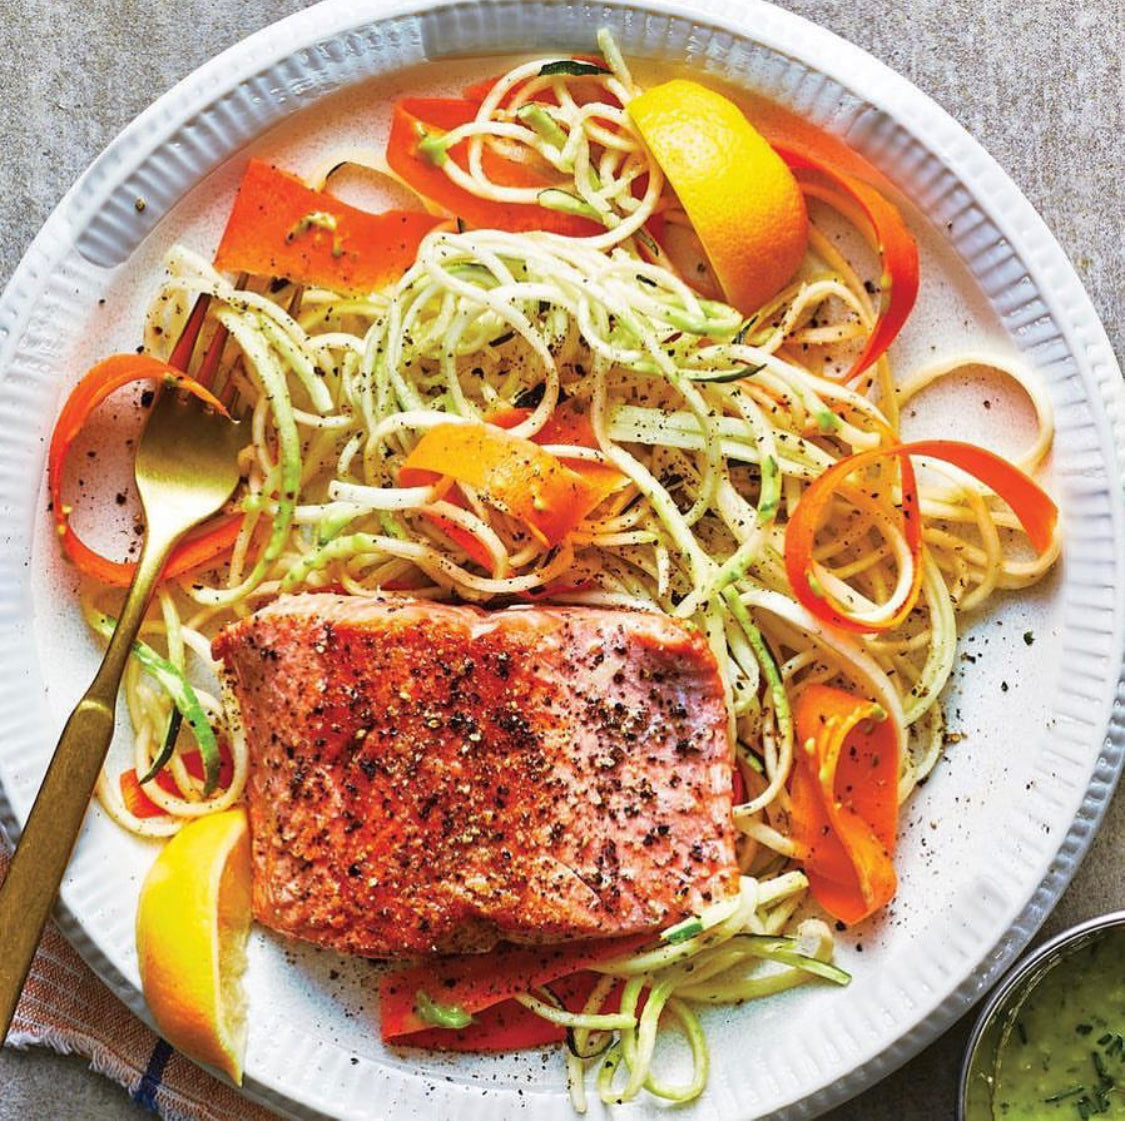 Herb roasted salmon with zucchini and carrot noodle salad